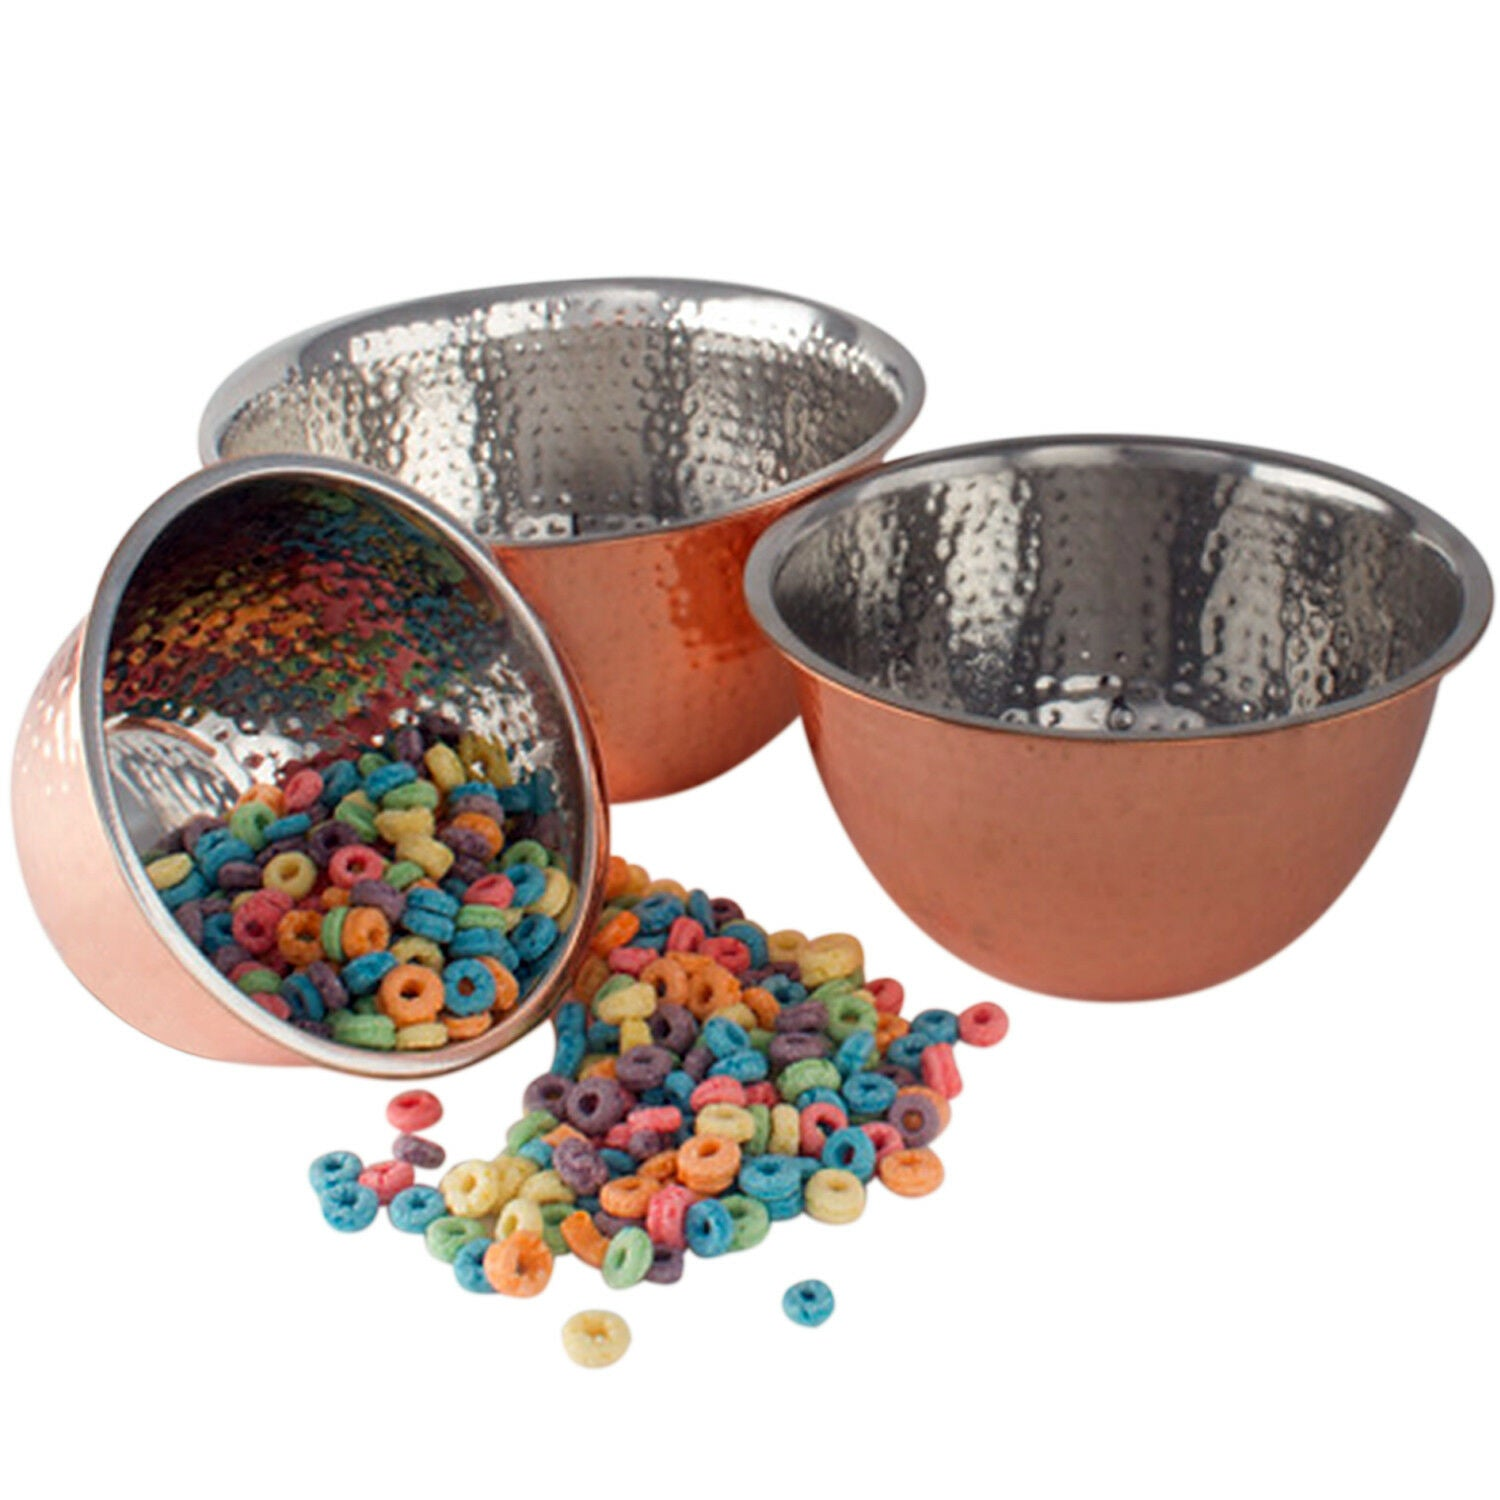 High Quality Stainless Steel Copper Hammered Mixing Bowl 3 Piece Bowls Set